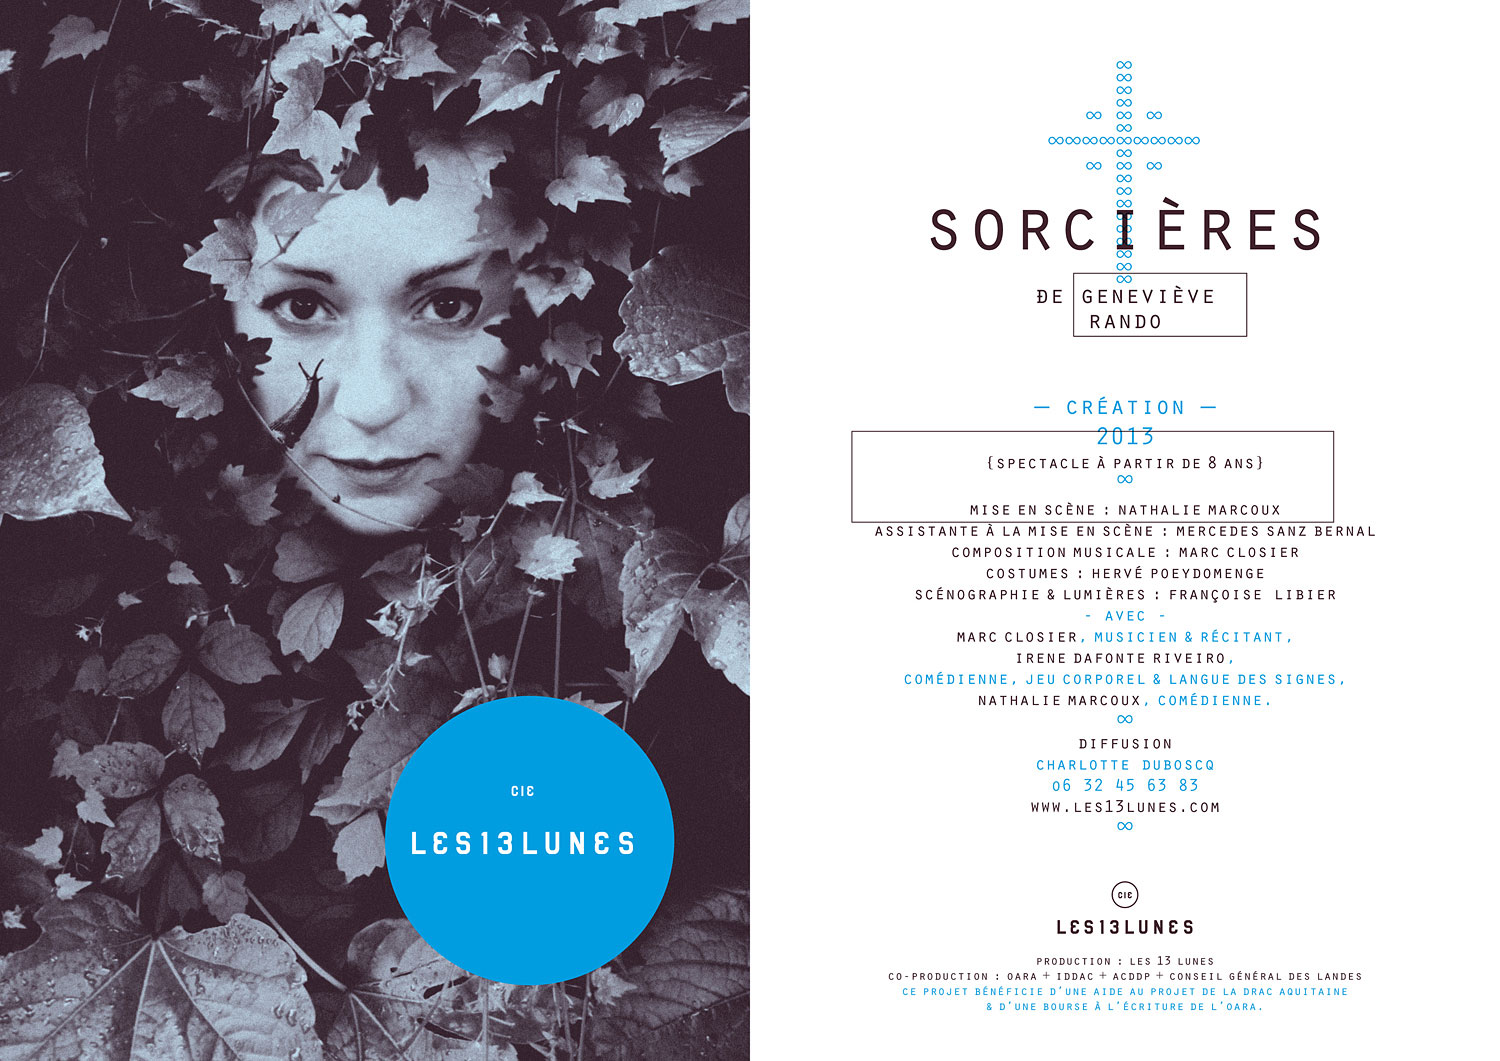 MrThornill-graphisme-13lunes-sorcieres